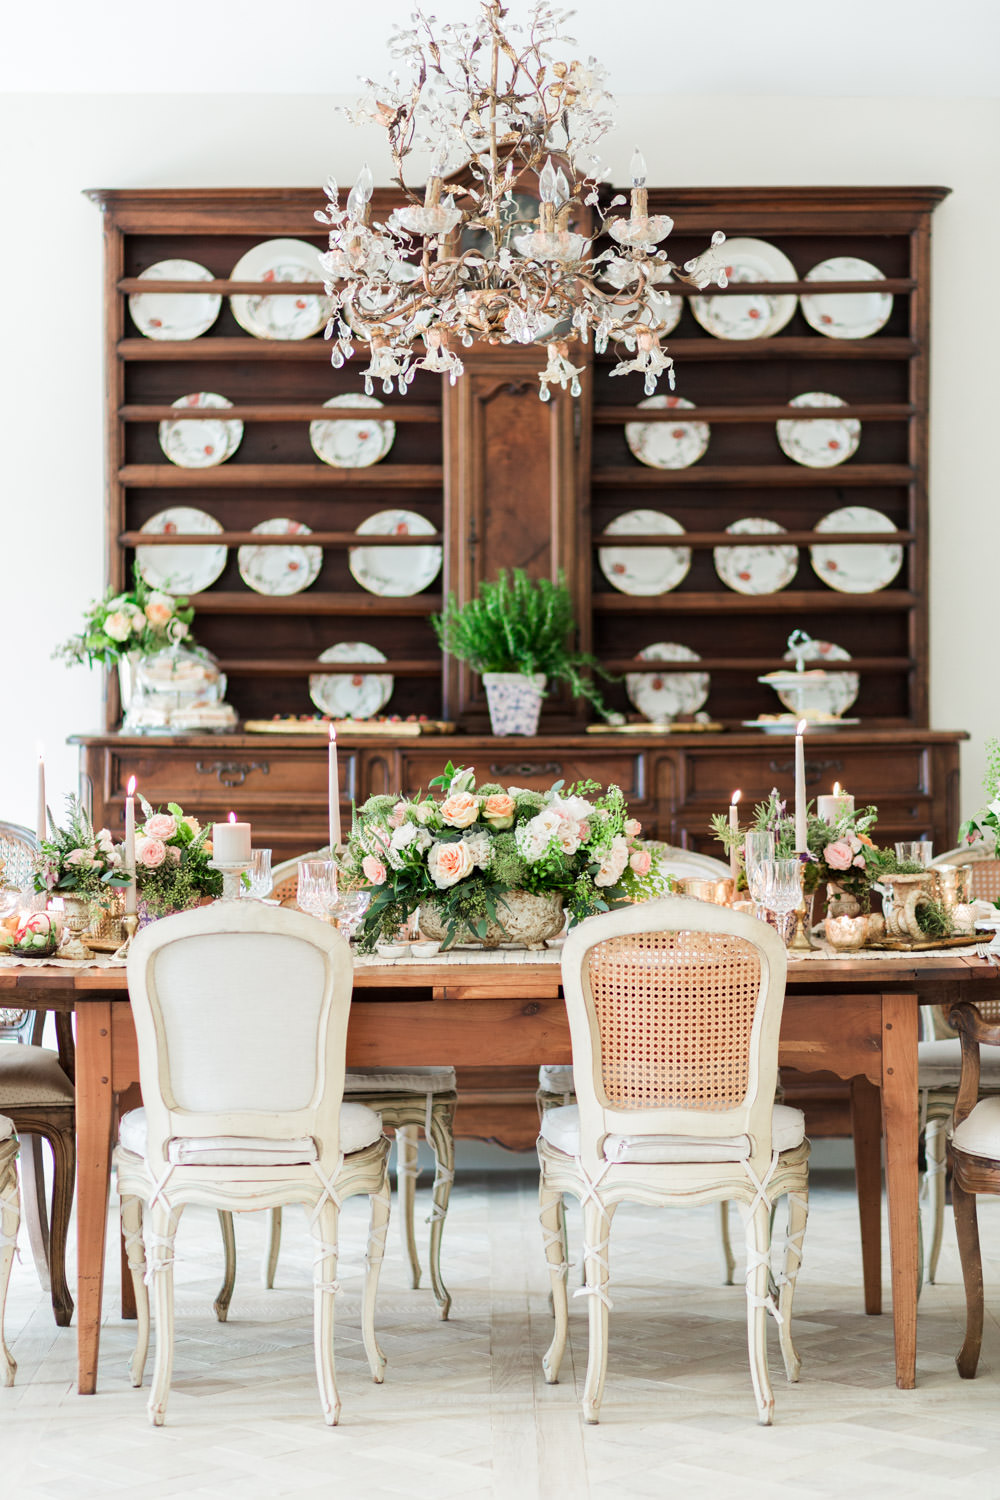 Peach white and green fine art centerpiece tablescape, Rancho Santa Fe Private Estate Easter Party Inspiration, HauteFetes, Cavin Elizabeth Photography